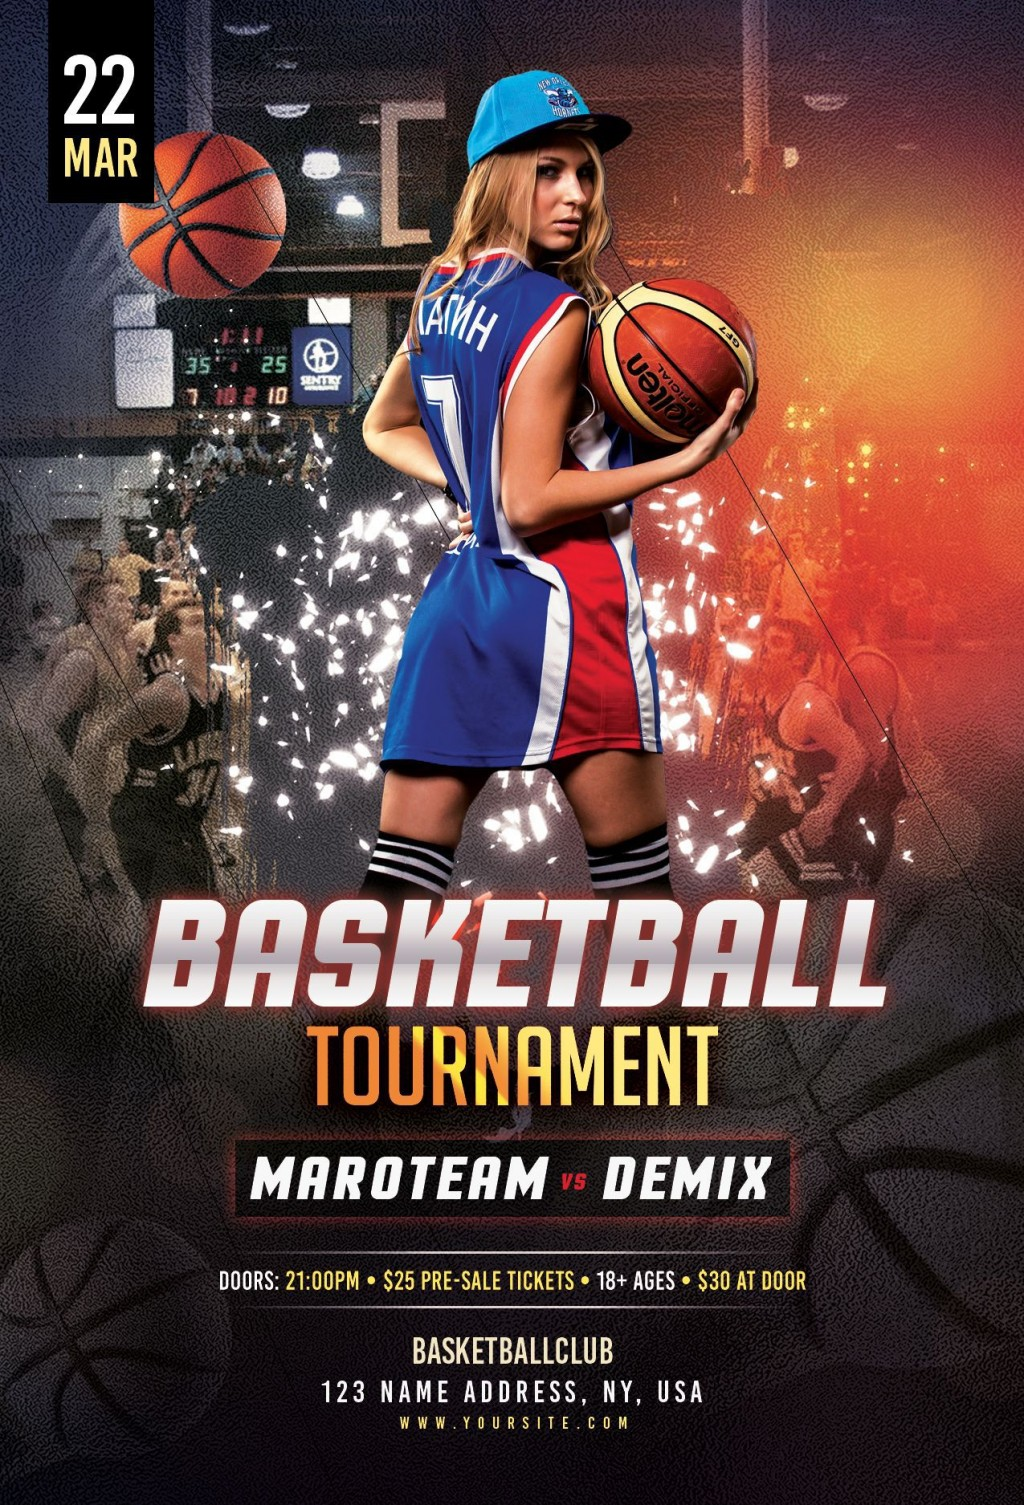 001 Rare Basketball Flyer Template Free Concept  Brochure Tryout CampLarge